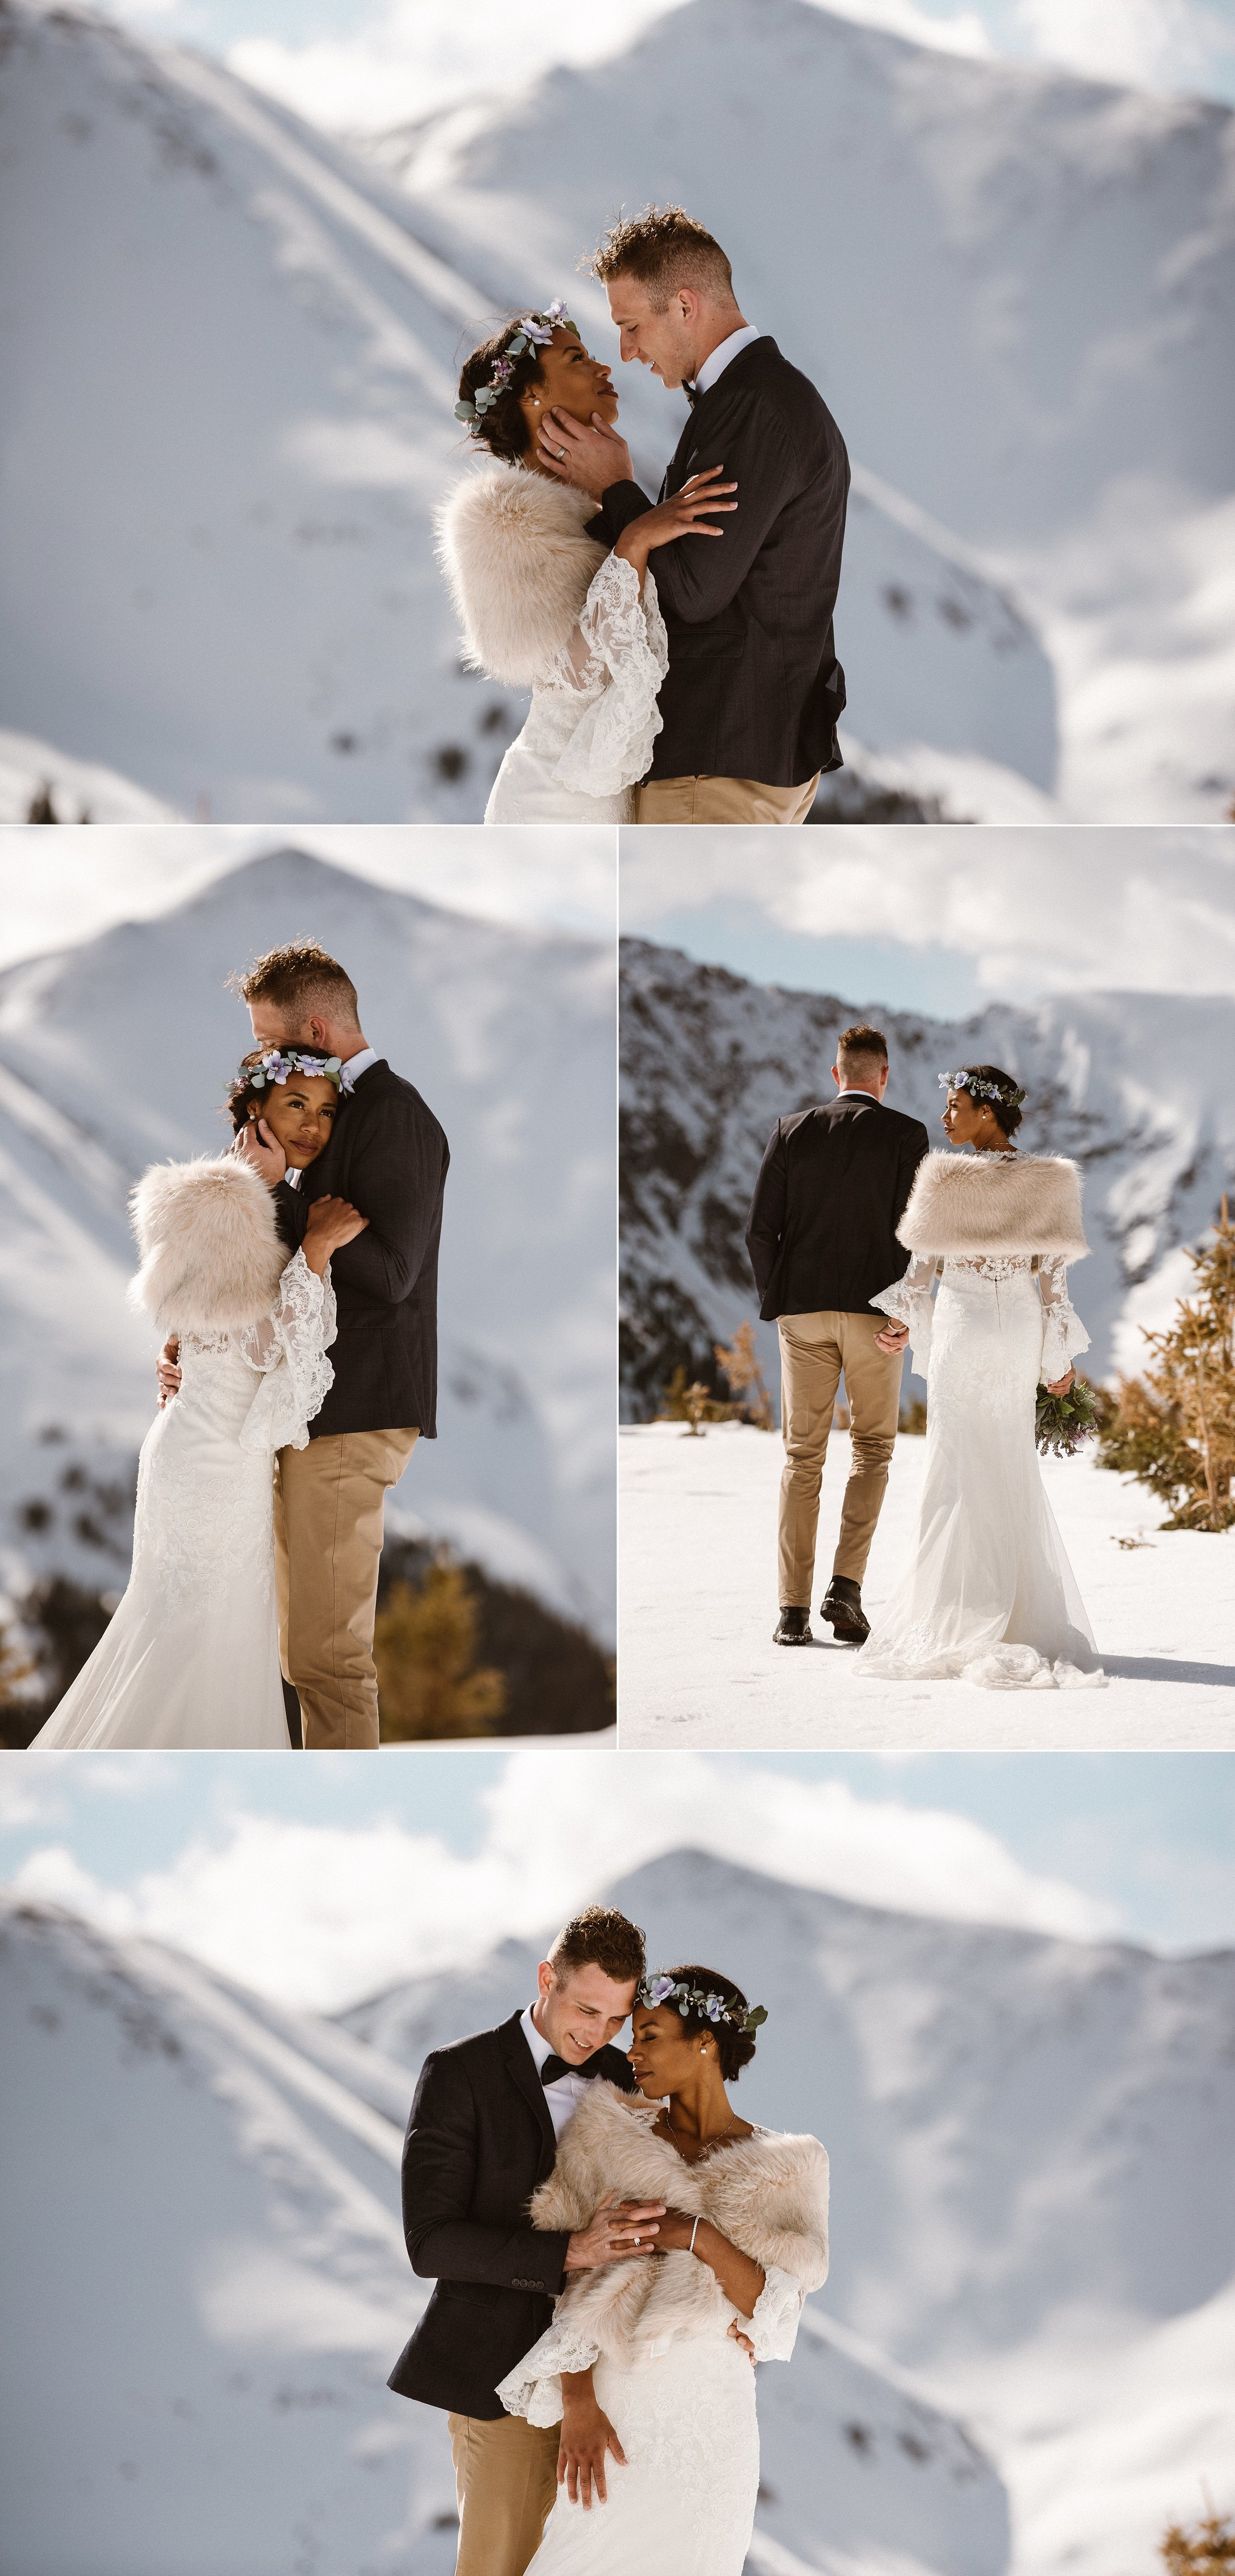 Trekking onwards to their next adventure destination, they looked back and smile on their perfectly private elopement ceremony location up Loveland Pass. This intimate mountain wedding captured by Maddie Mae Photography.